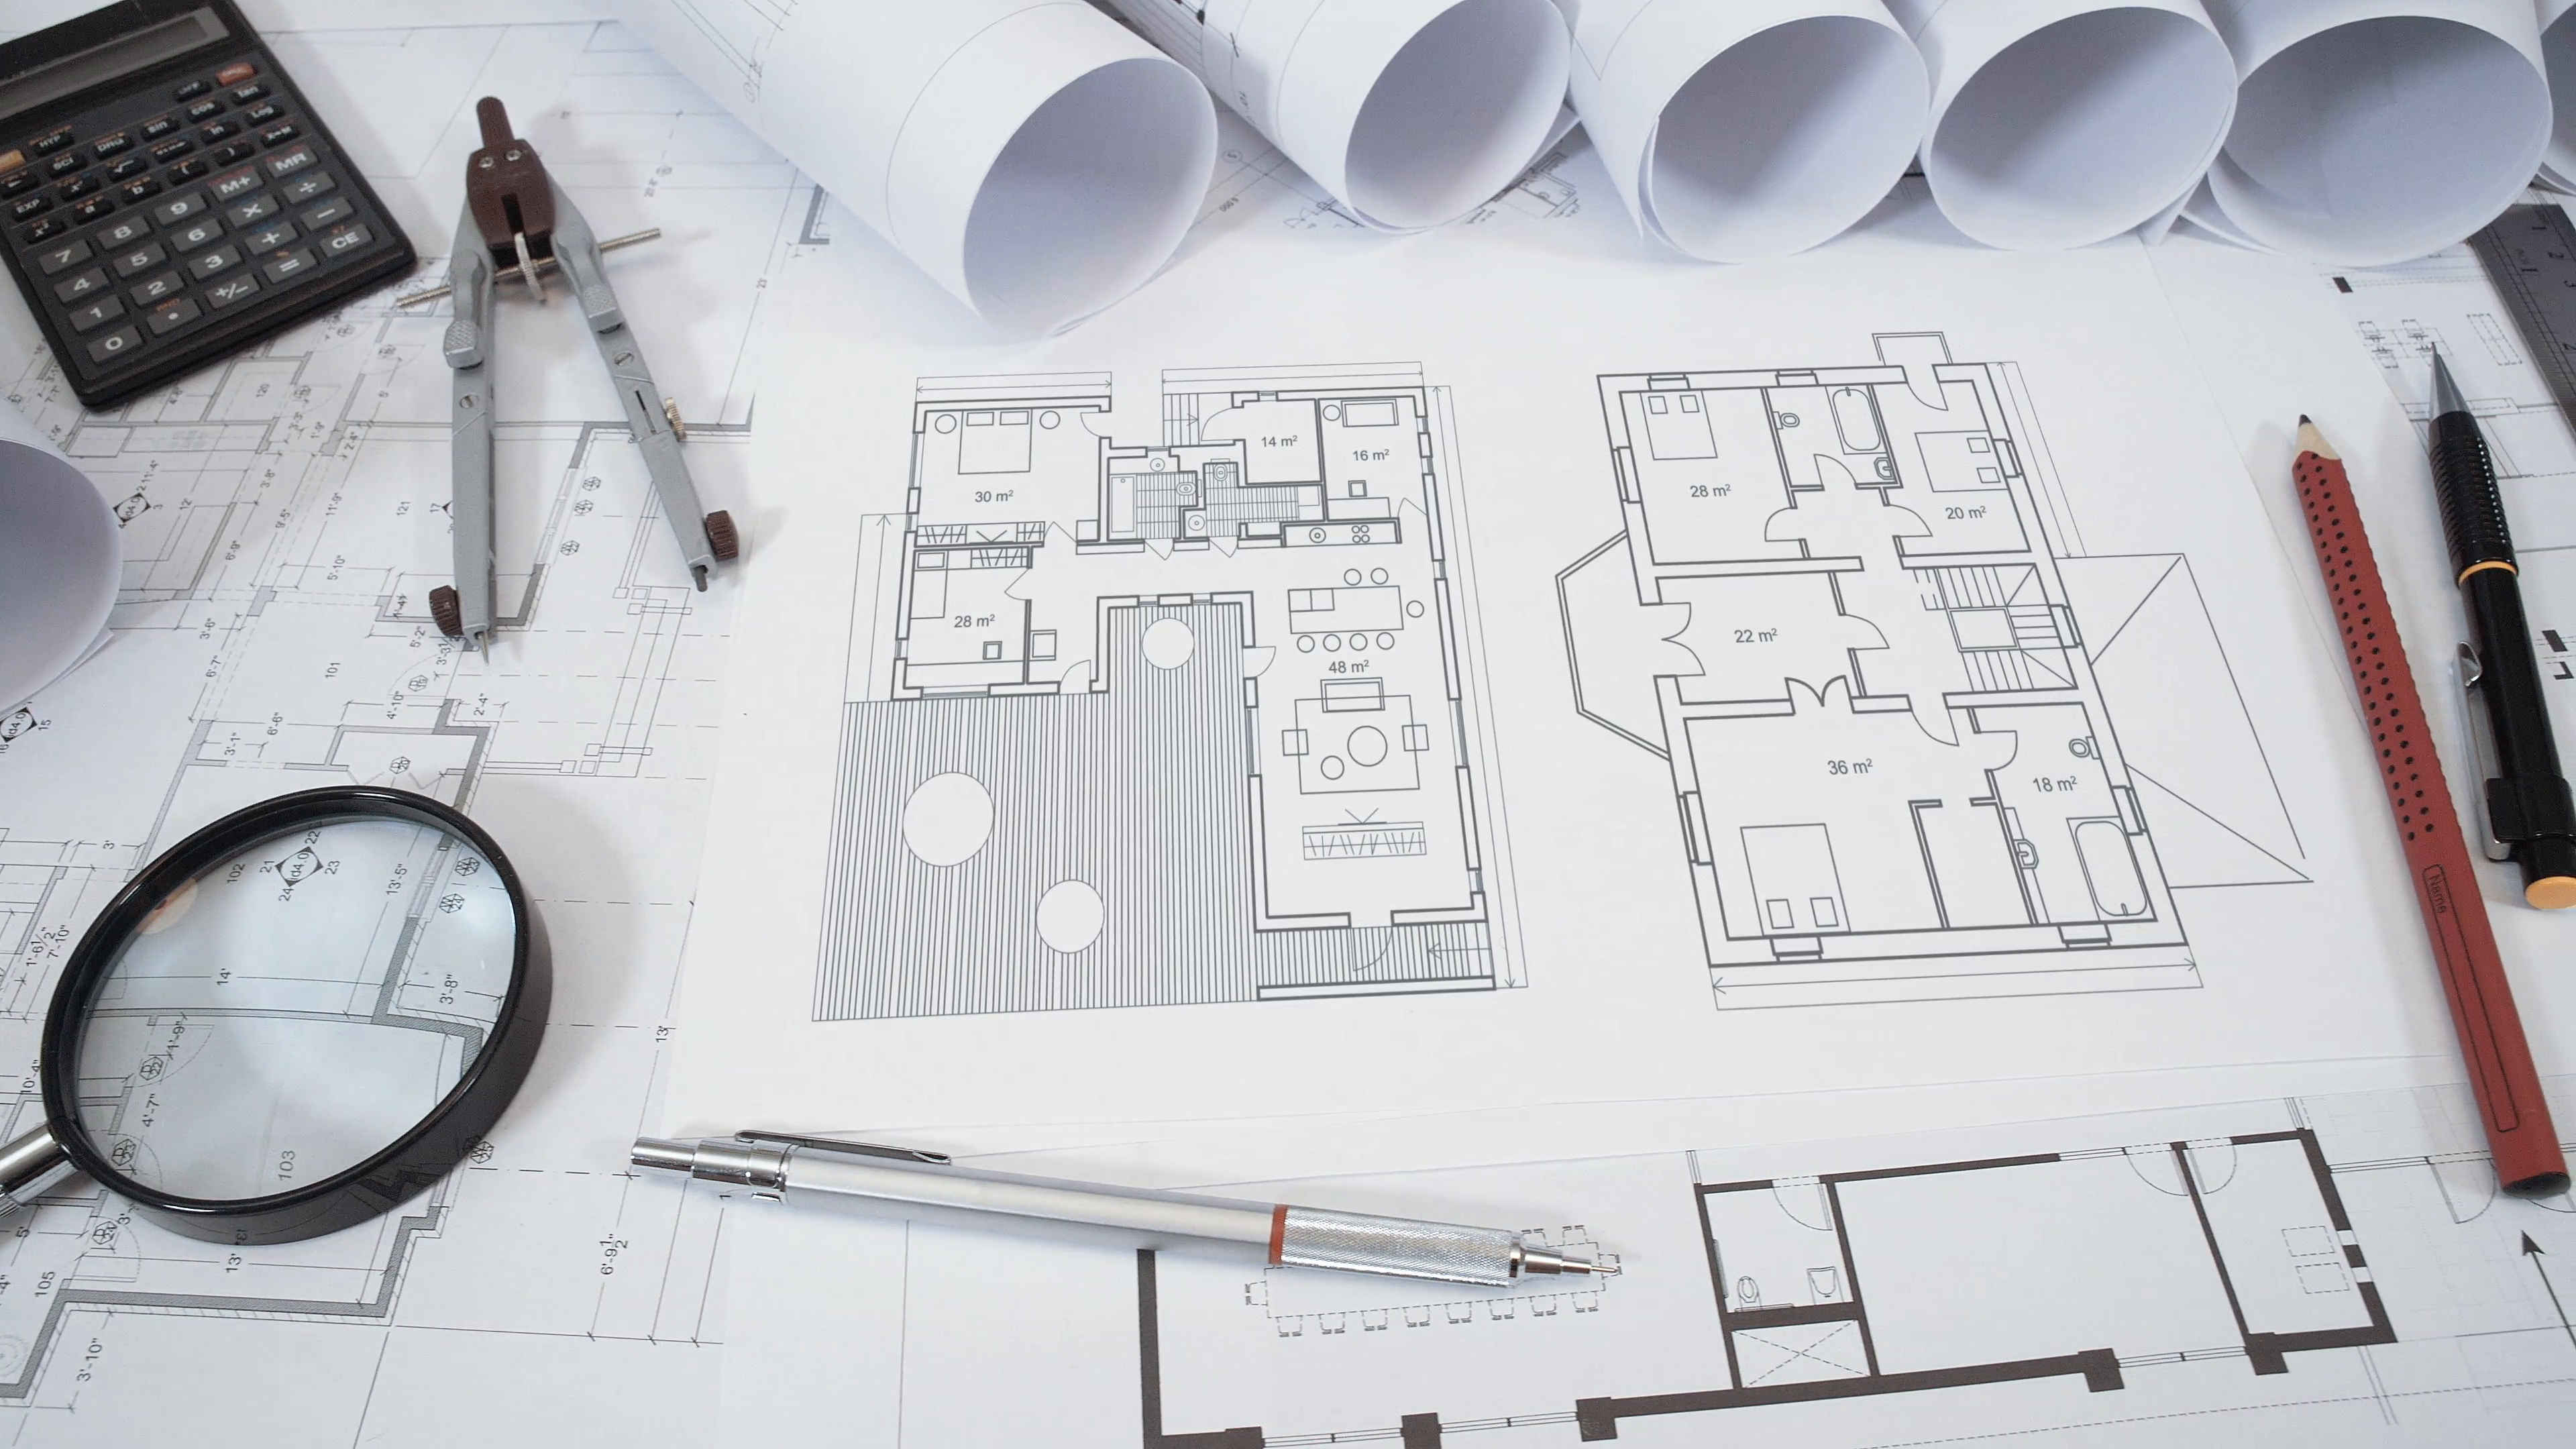 floor-plan-of-modern-house-is-being-drawn-on-paper-in-architects-office_4fmml3rqjx__F0013